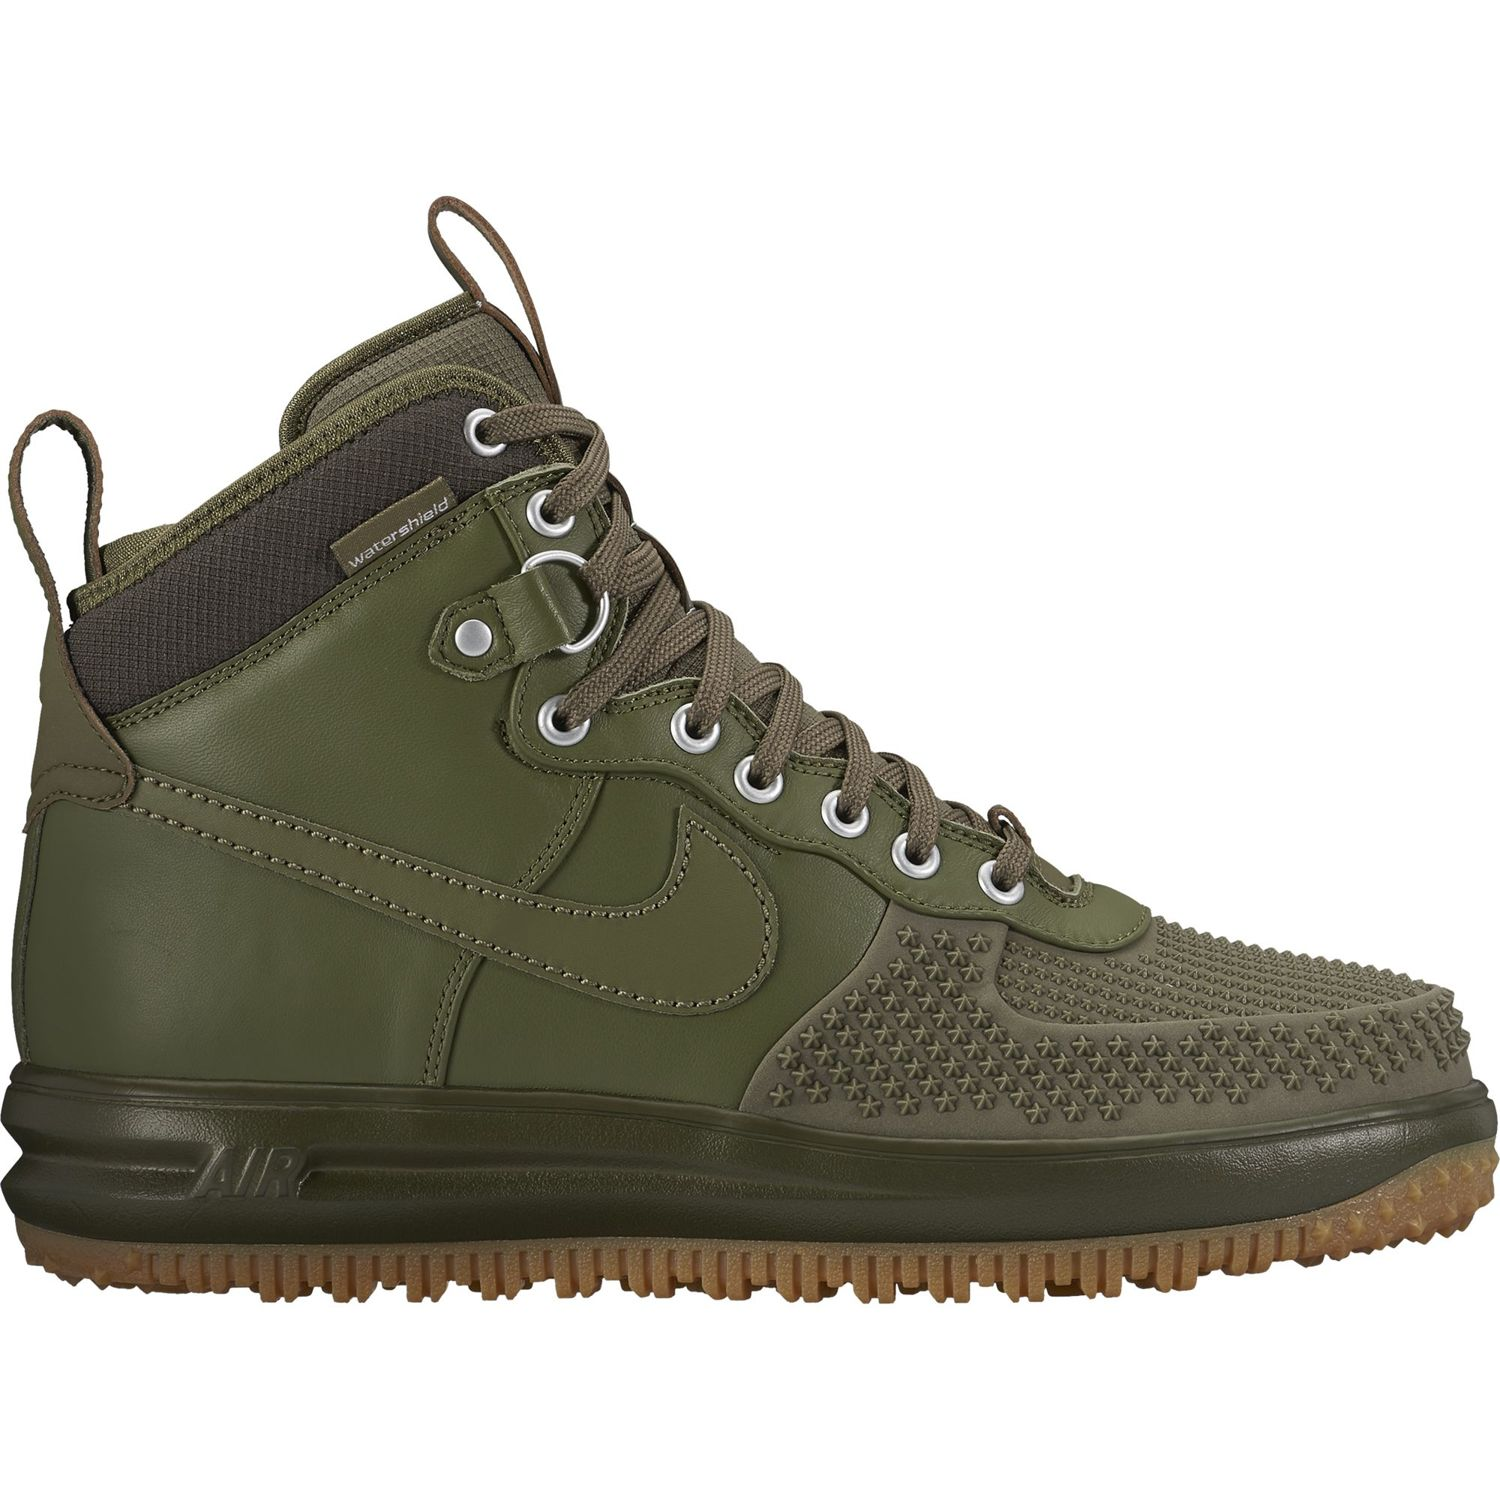 Nike Lunar Force 1 Duckboot Medium Olive 805899 201